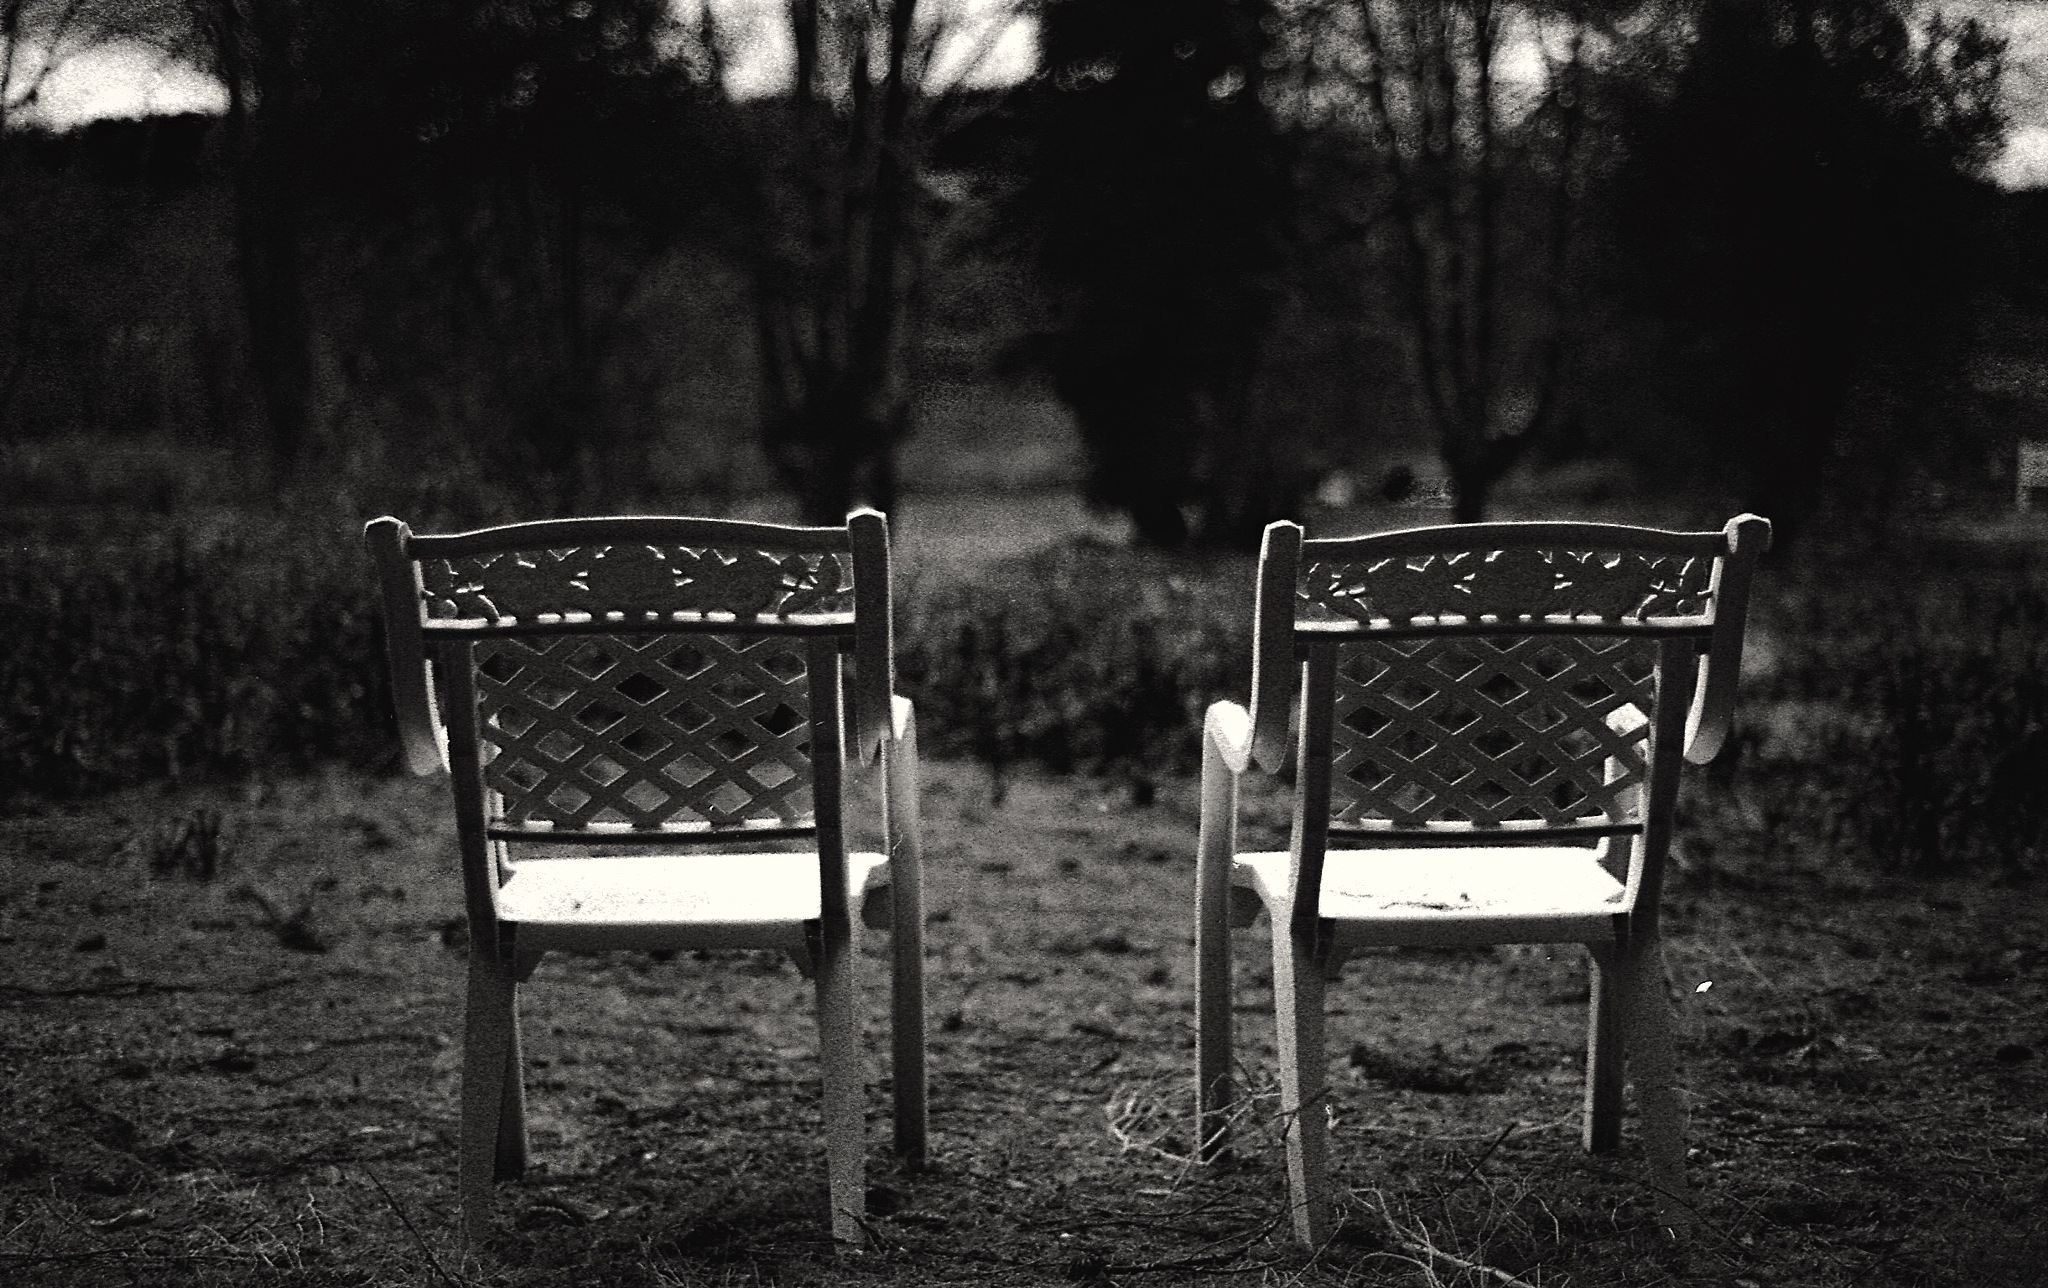 Two chairs in Ioco ghost town by Aydn Lunden